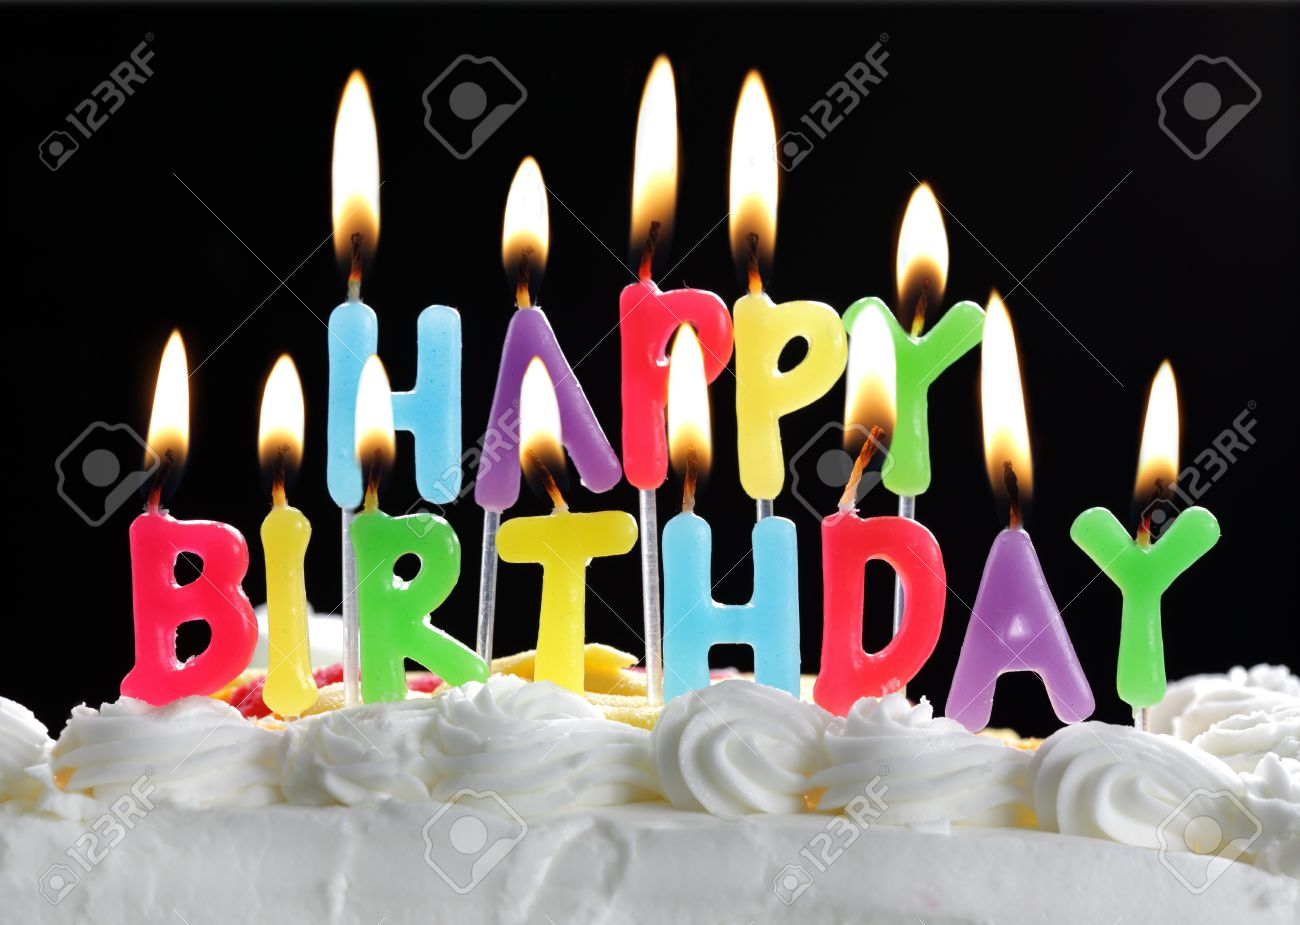 Colorful Happy Birthday Candles Burning On A Cake Stock Photo